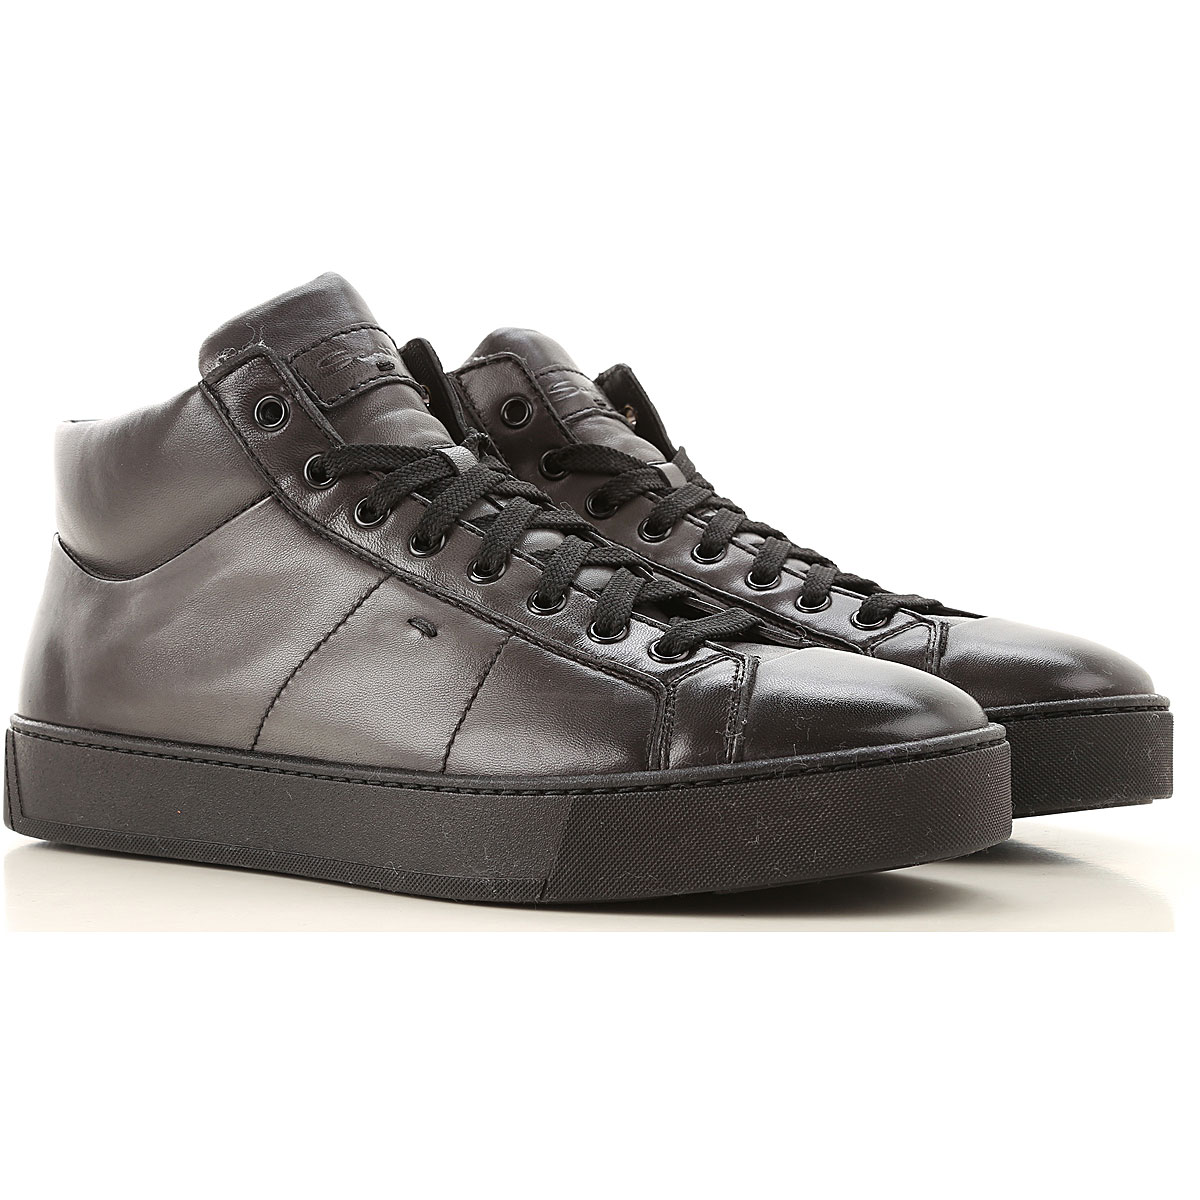 Santoni Sneakers for Men On Sale, Black Shaded, Leather, 2019, 11 8